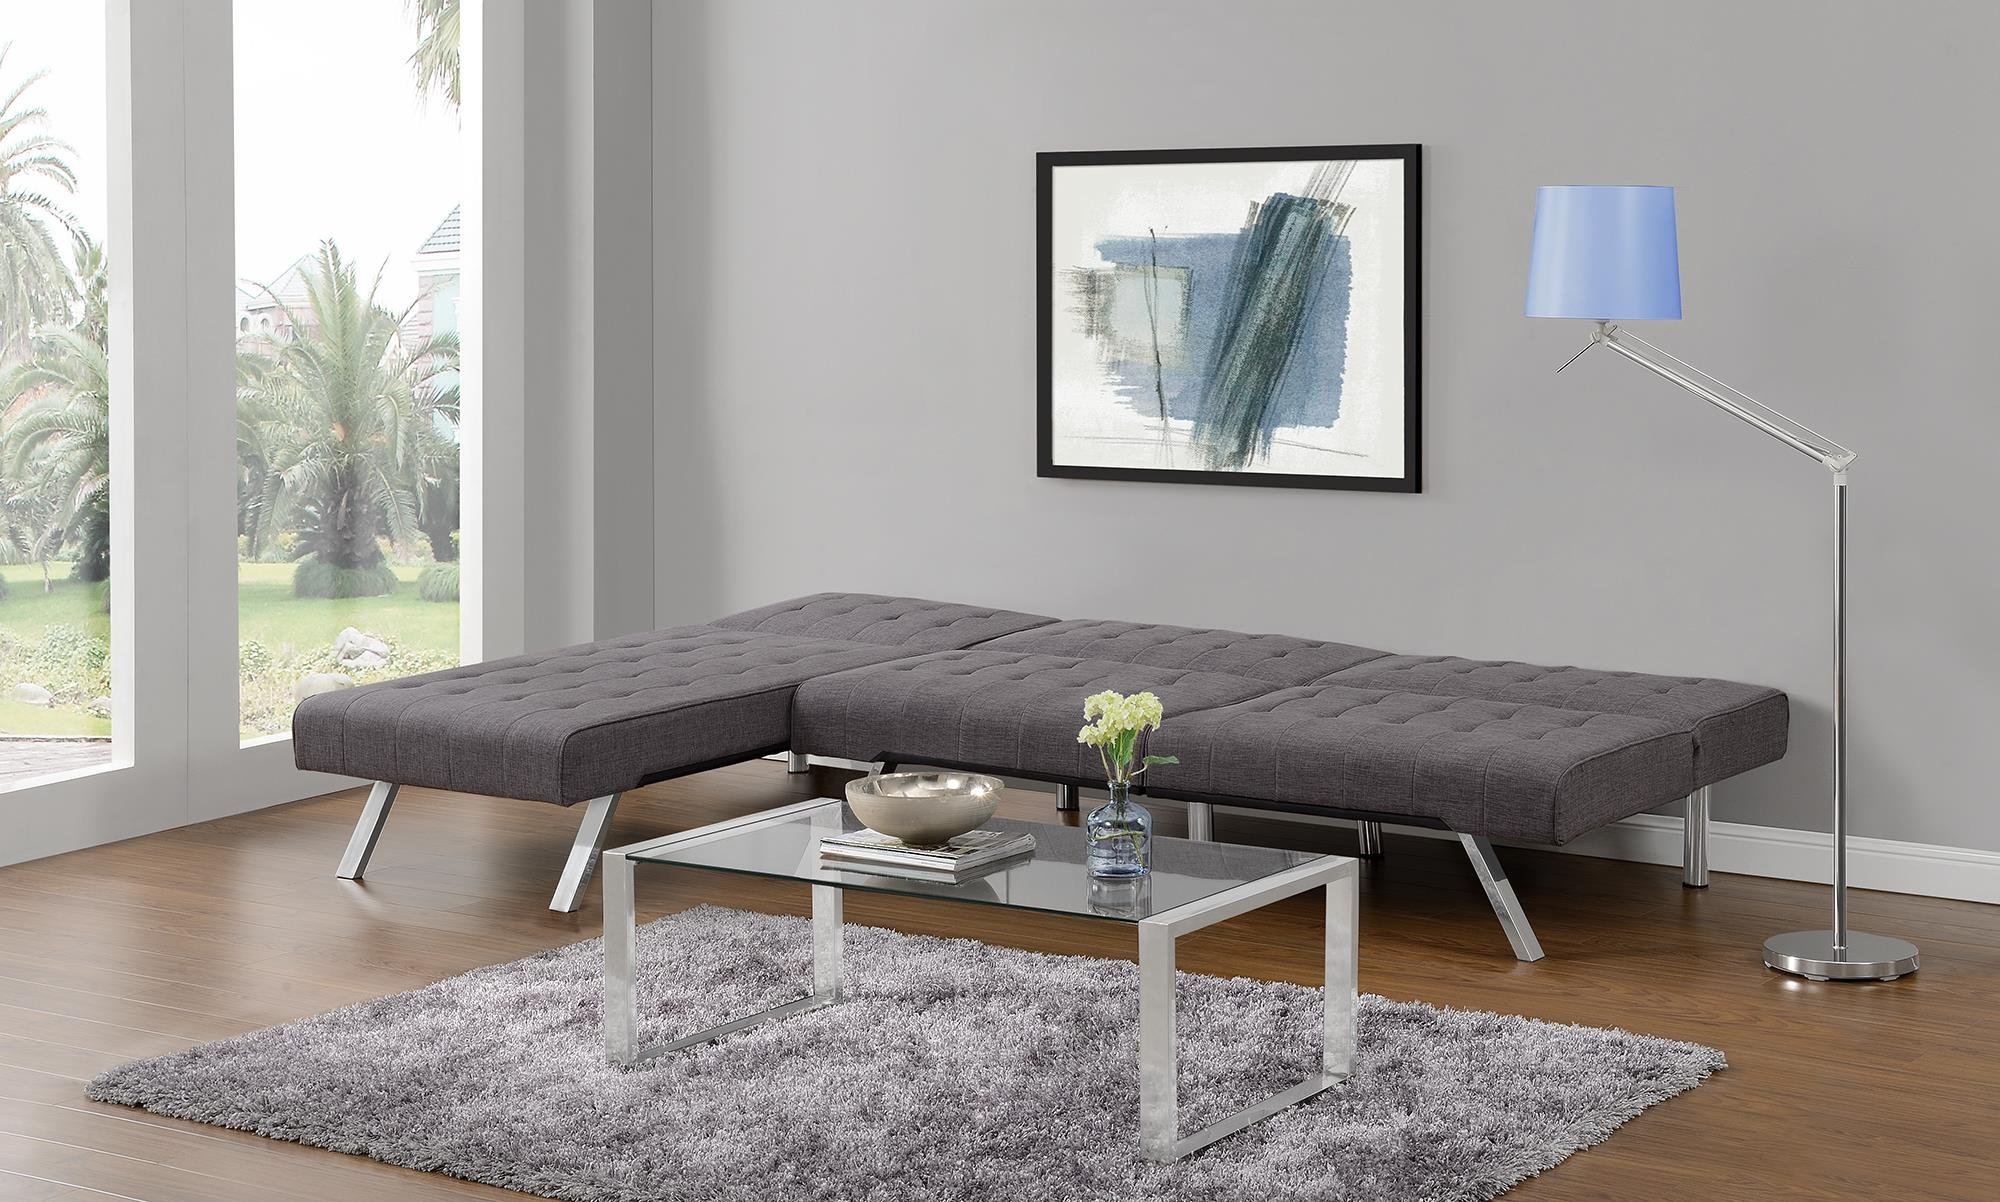 DHP Emily Linen Chaise Lounger, Stylish Design with Chrome Legs, Grey by DHP (Image #6)